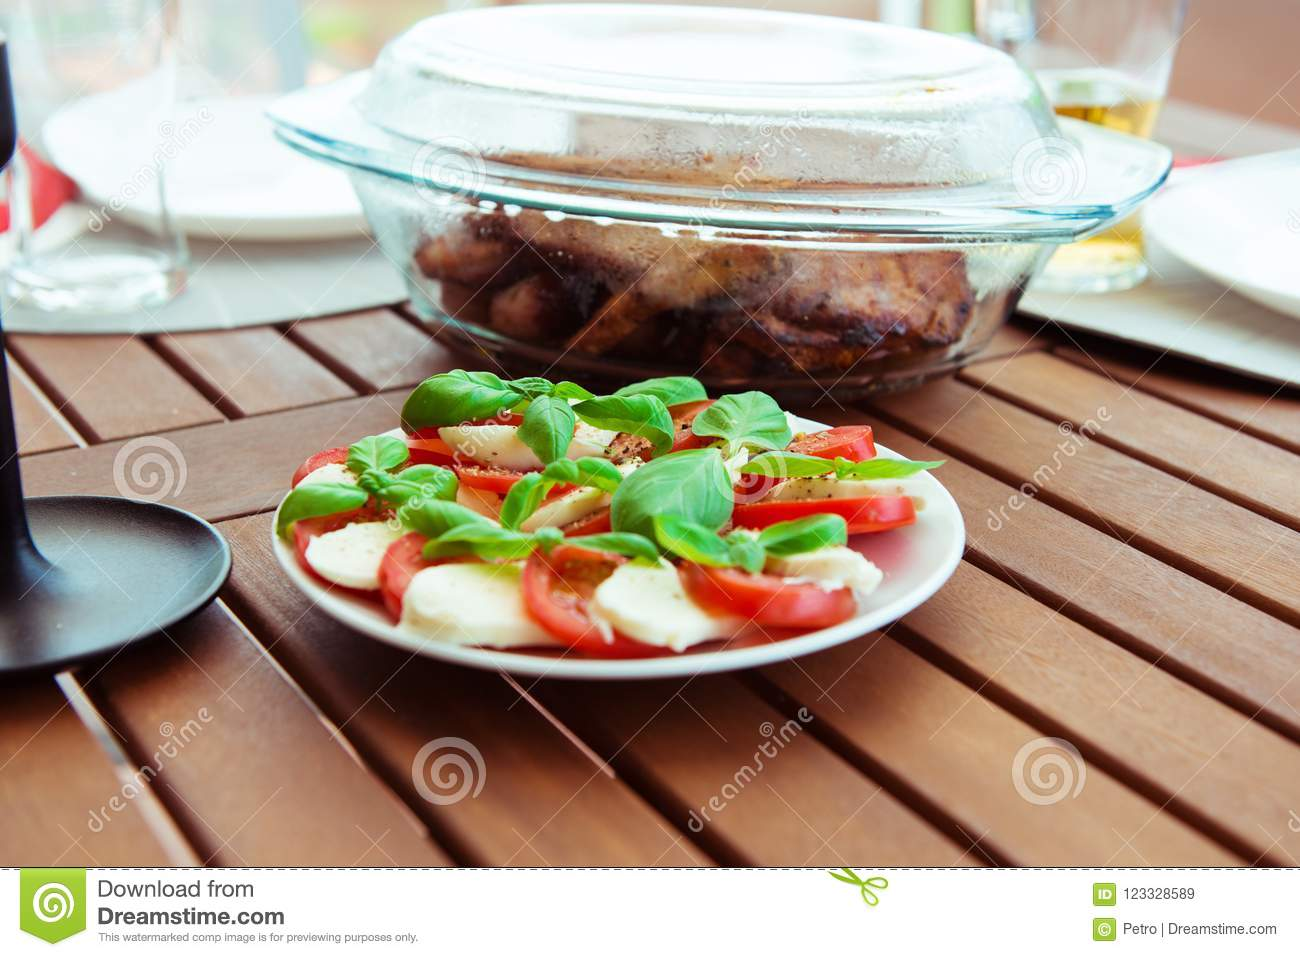 Grill Terrasse Photo Of Caprese Salad With Grilled Meat And Sausages On The Tab